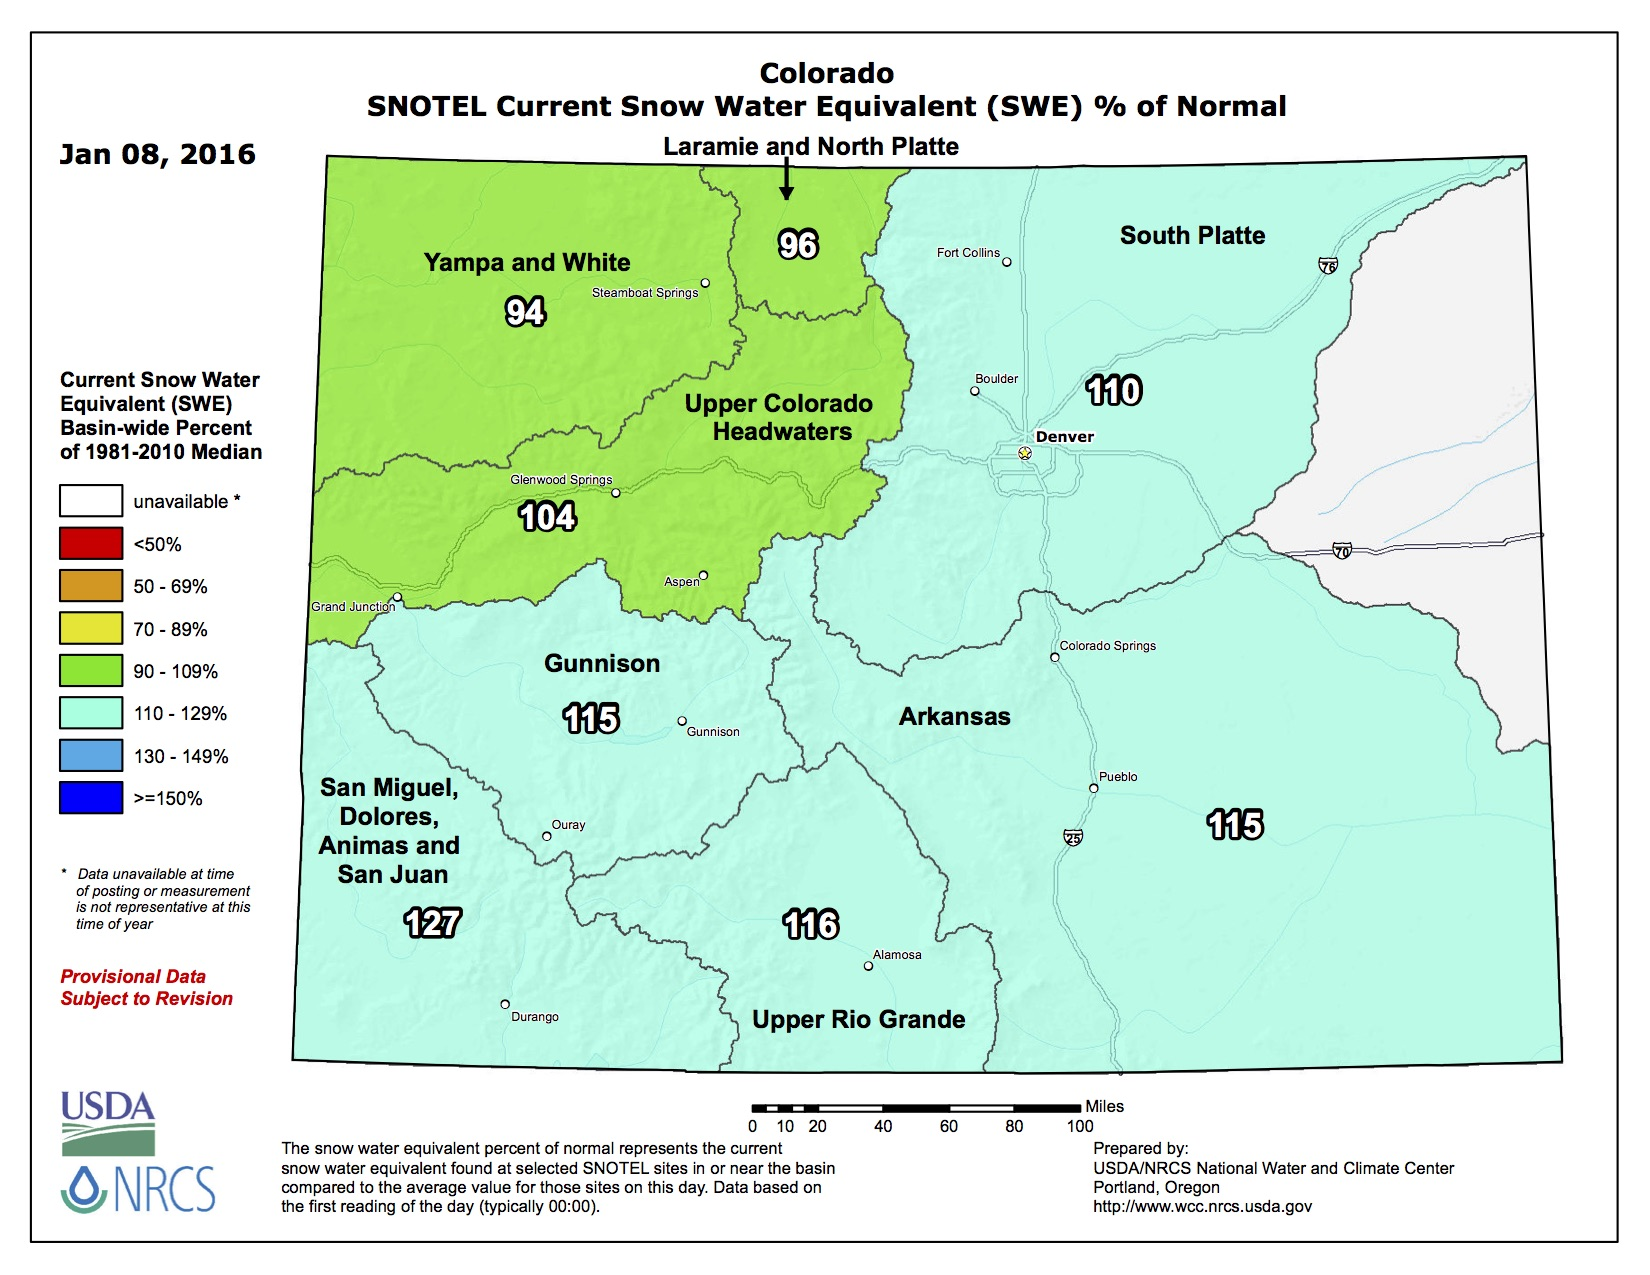 colorado snowpack conditions favorable to start the 2016 water